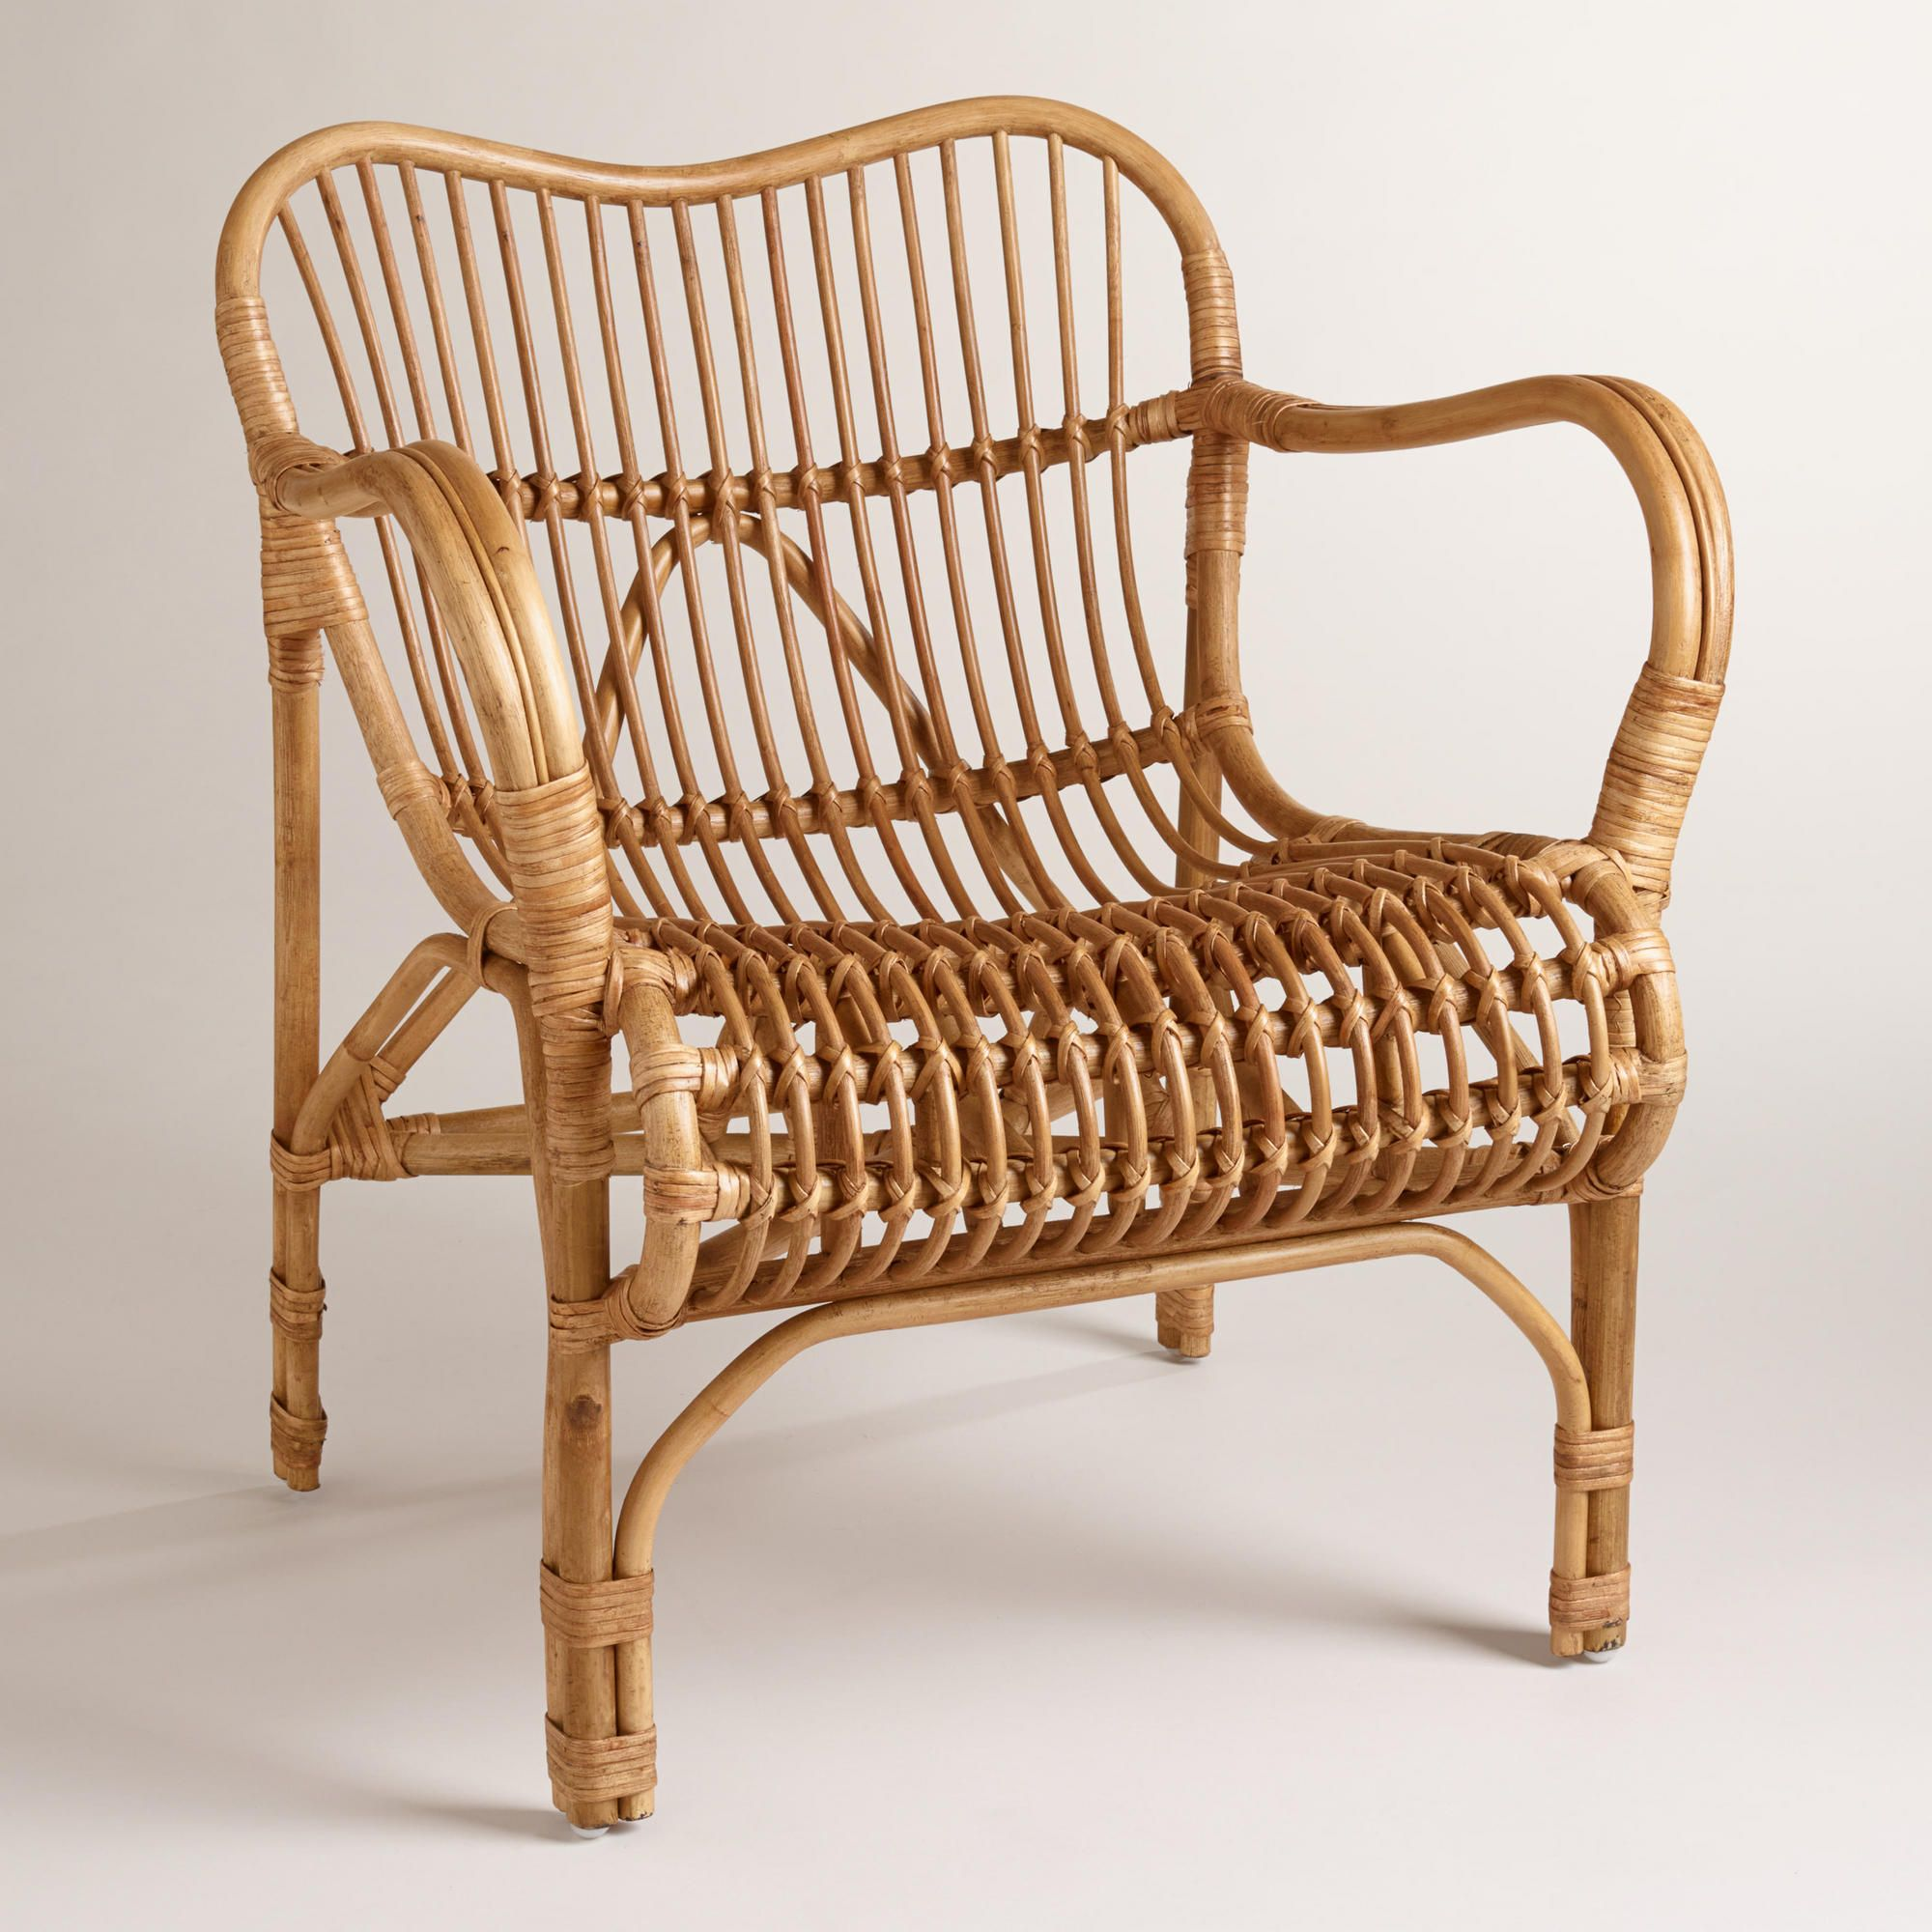 Rattan Cole Chair | World Market $199| Putting A Small Cushion To Give It A  Little Color